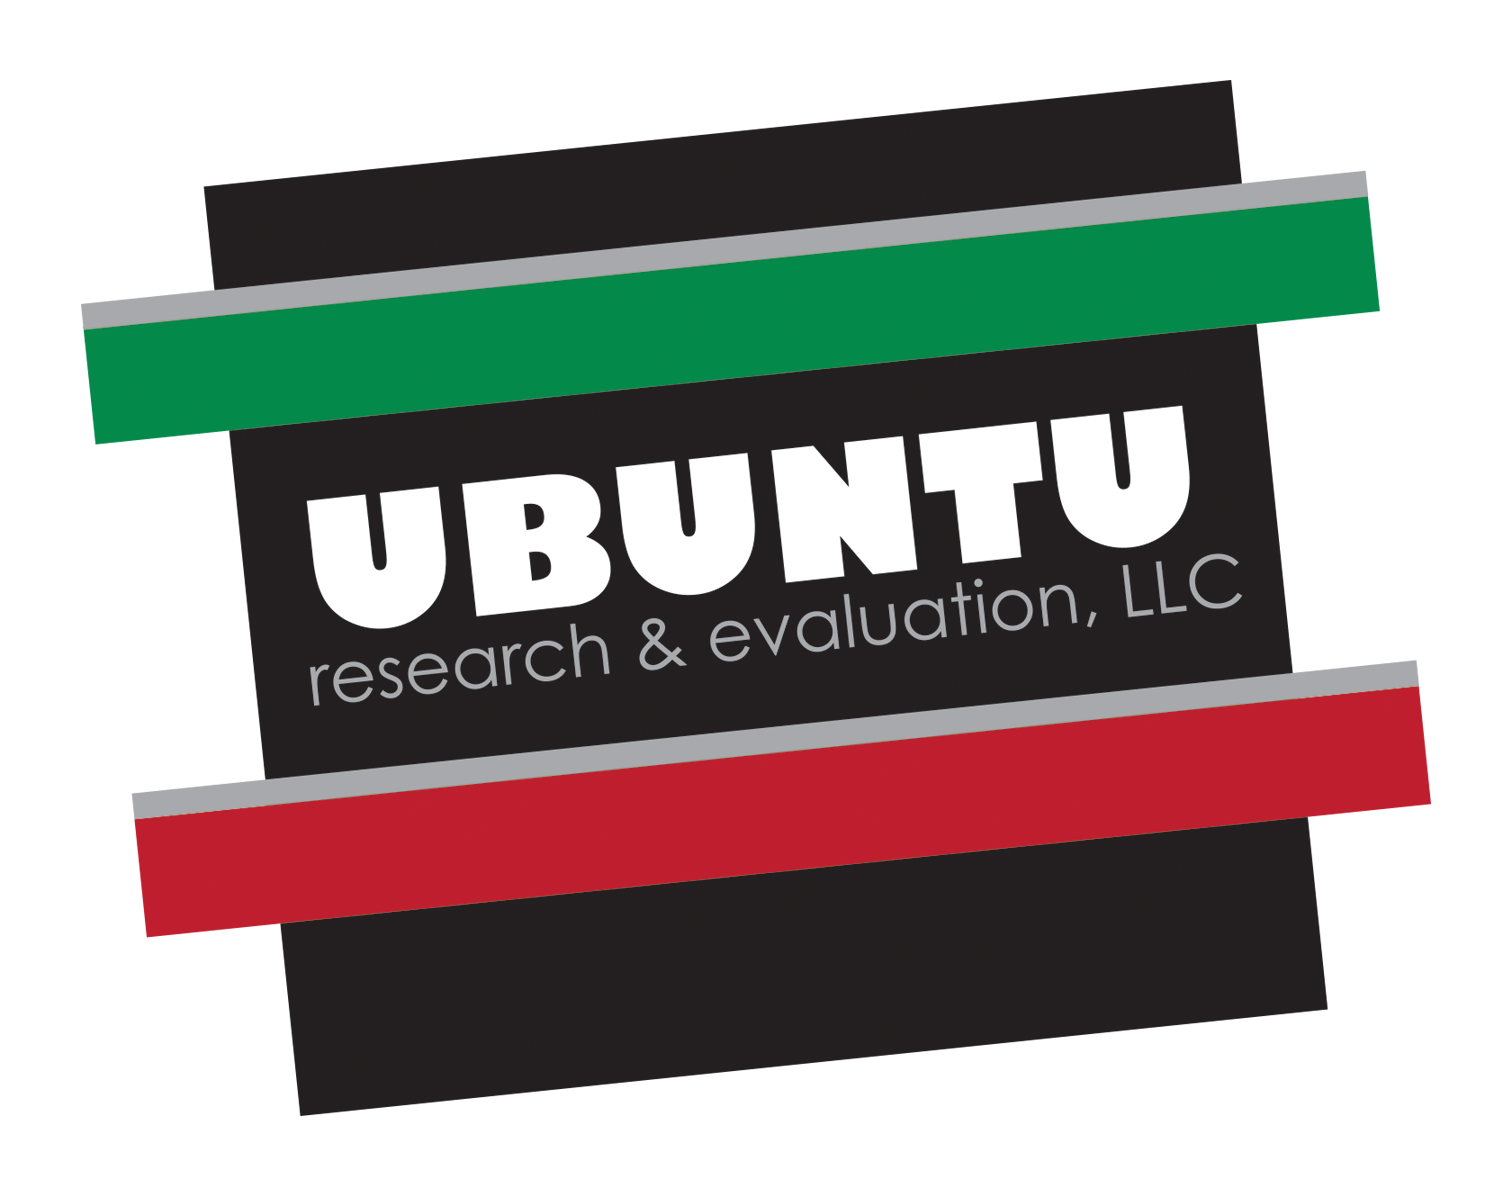 UBUNTU Research & Evaluation